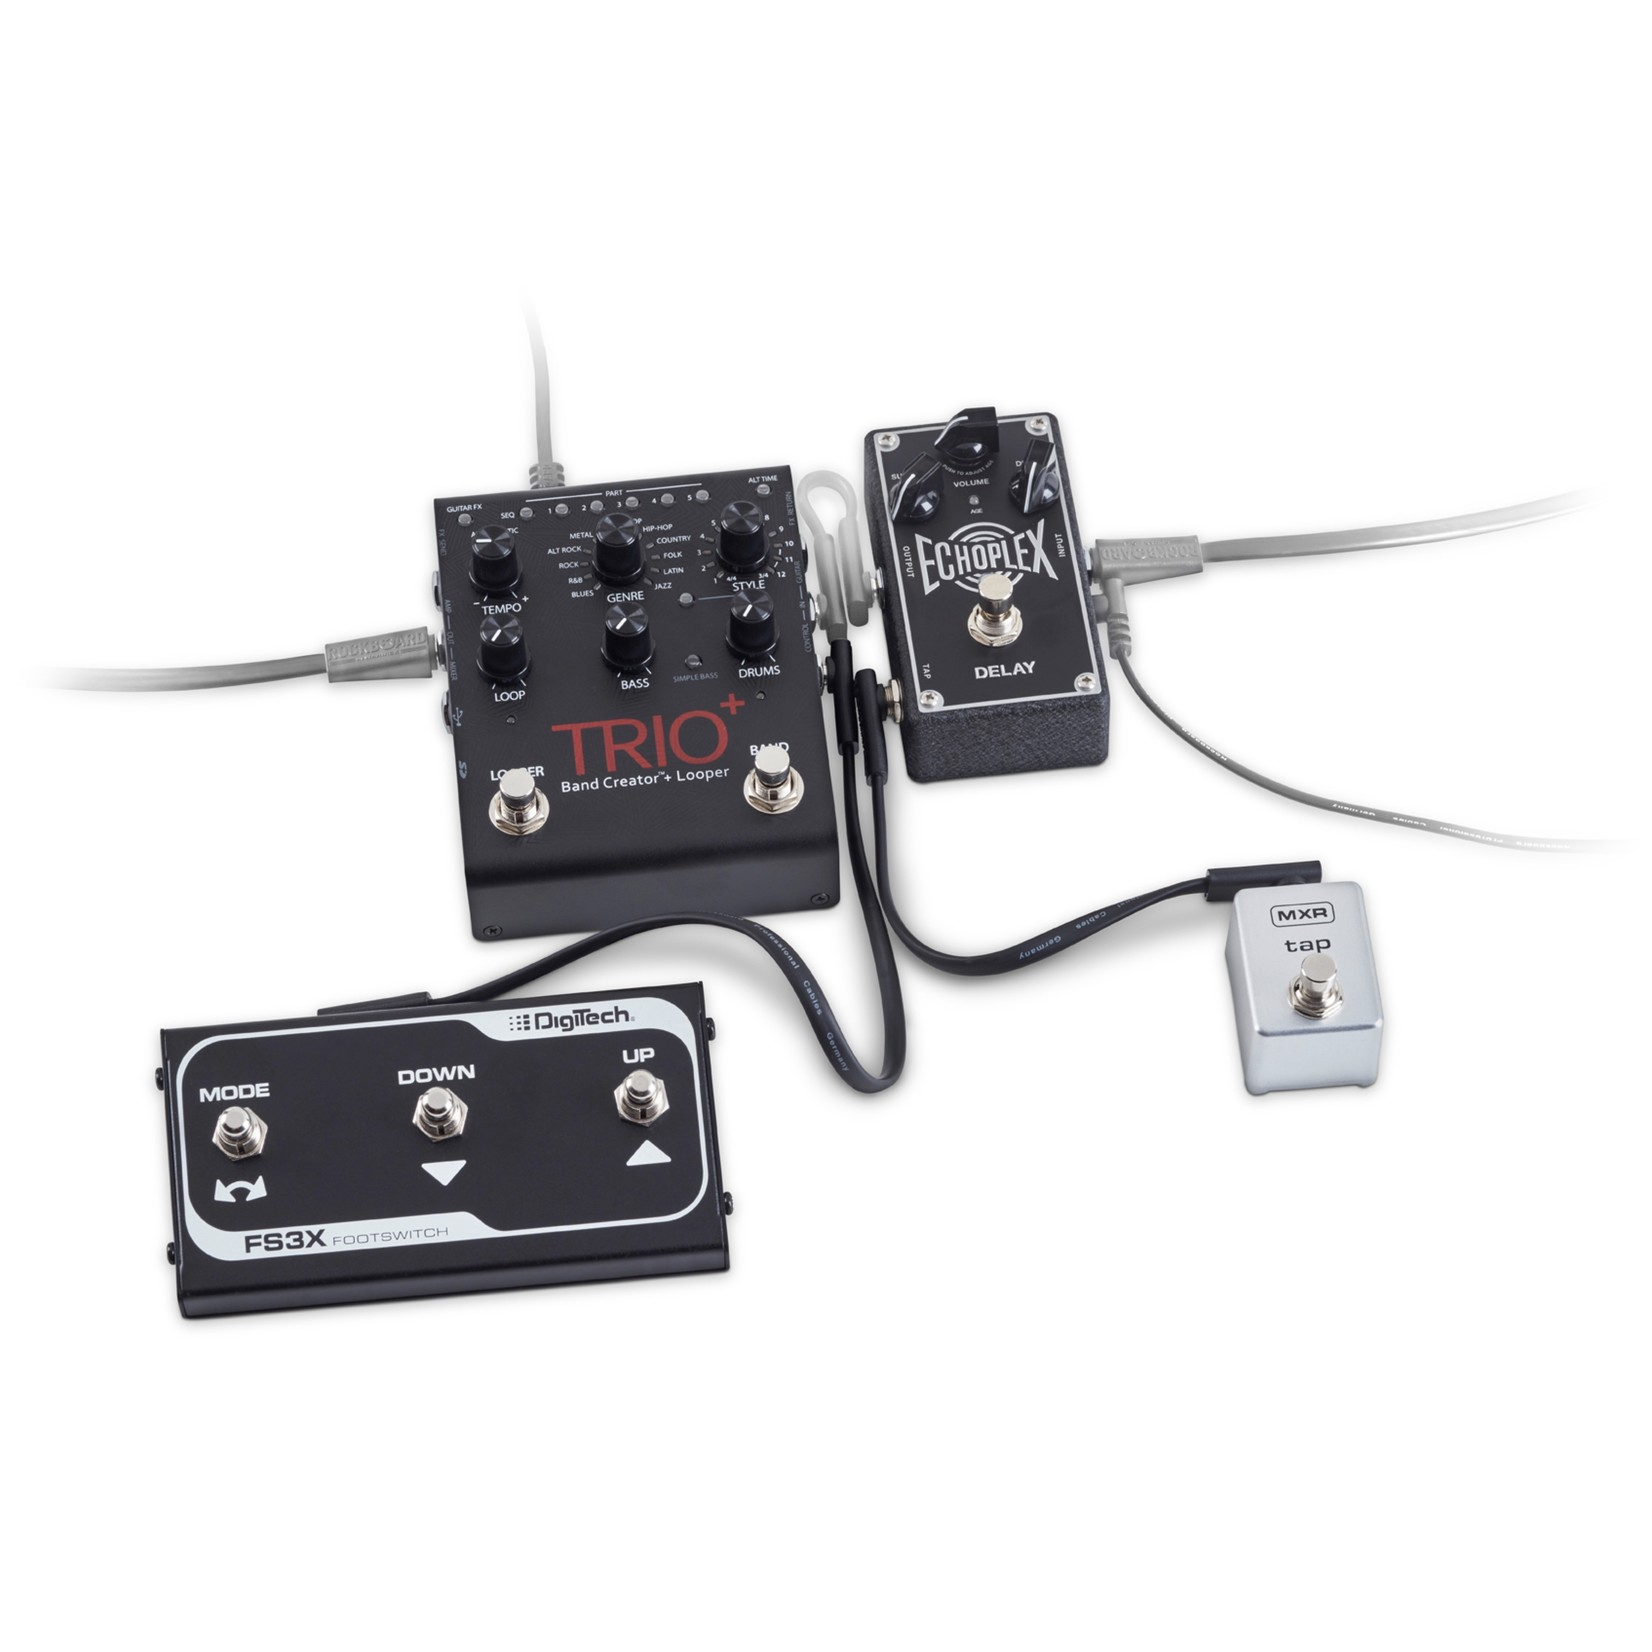 """Rockboard Rockboard Flat Patch TRS Cable, 15 cm / 5.90"""", Black, low profile, for switch & expression pedals."""